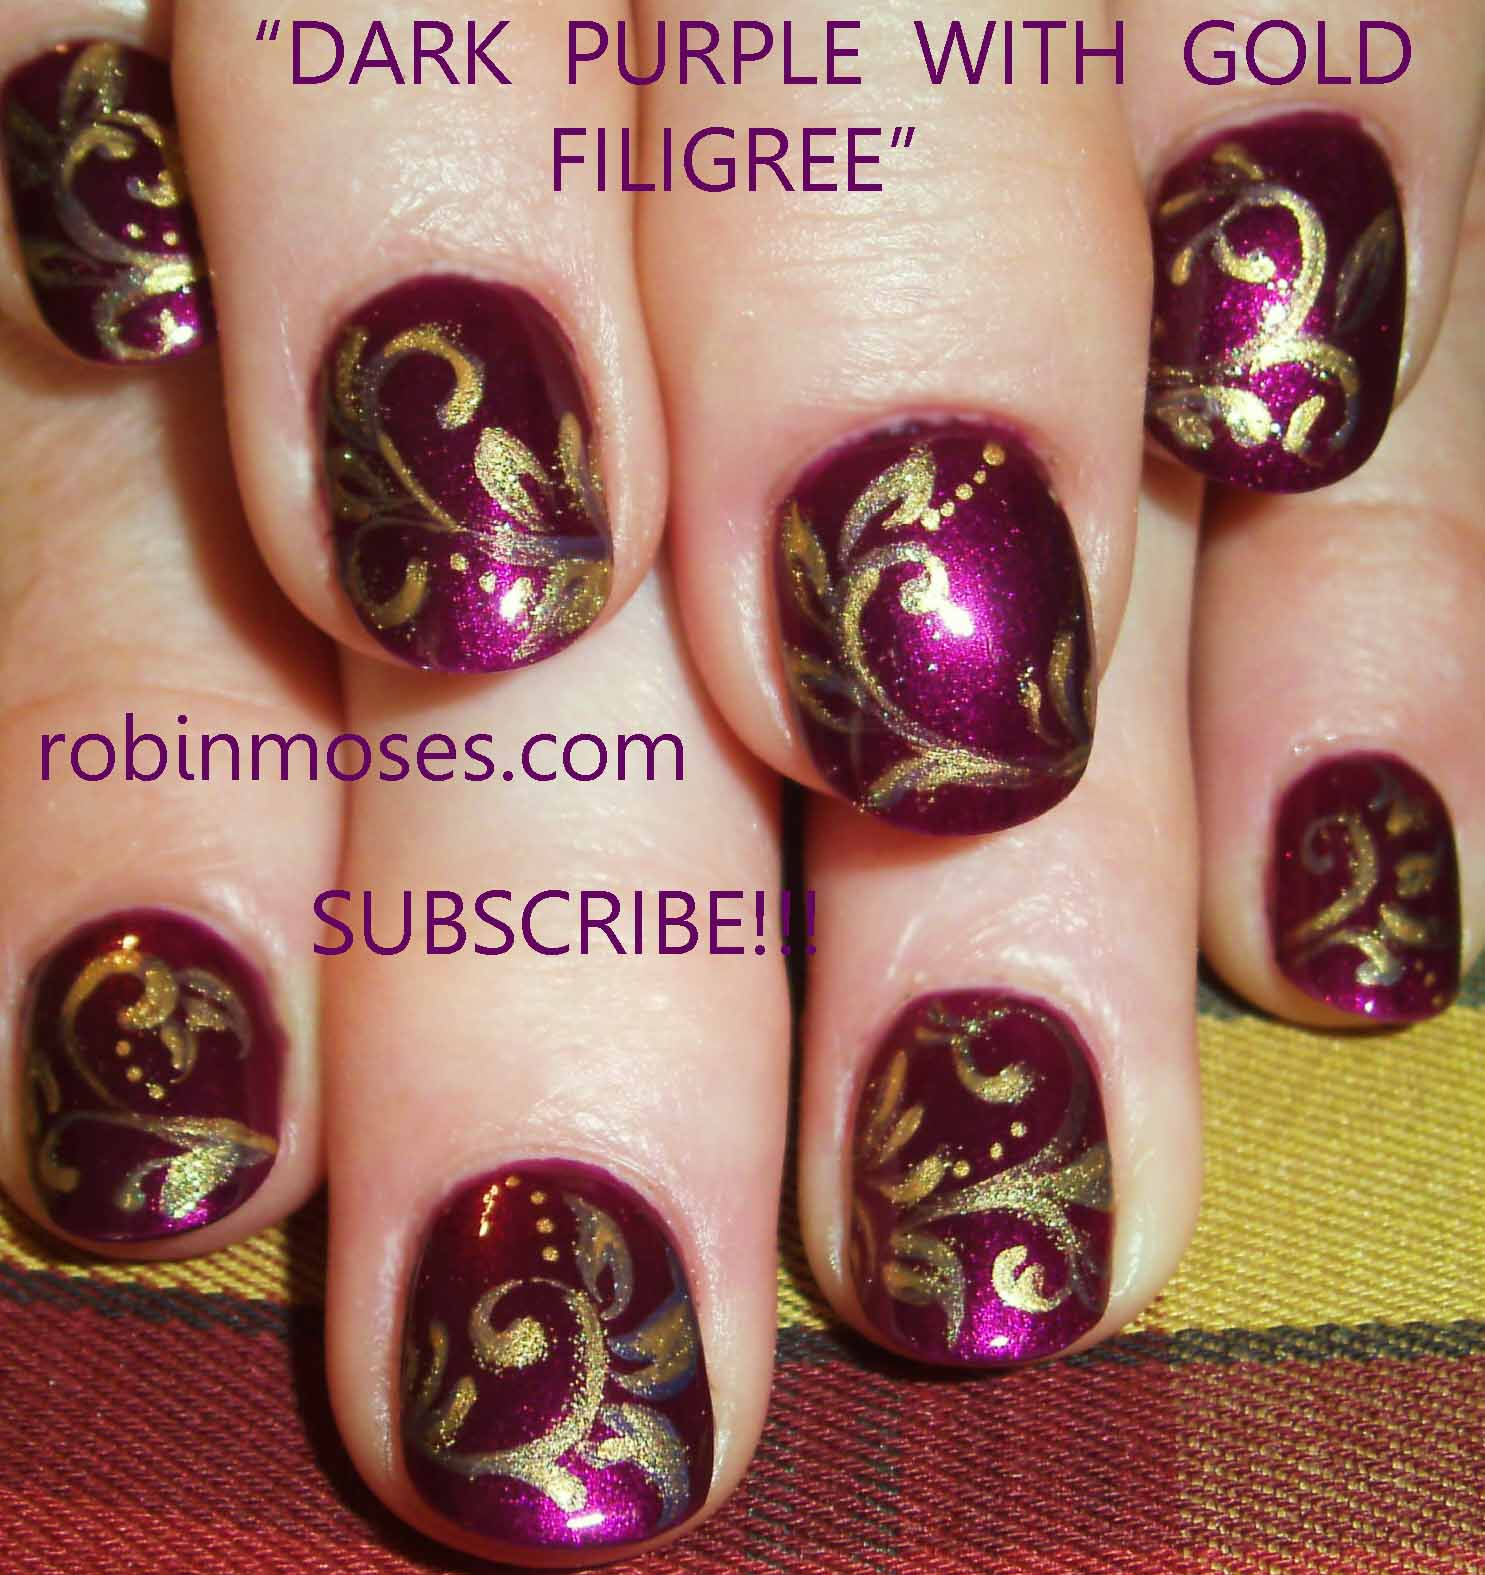 Nail Art By Robin Moses November 2011